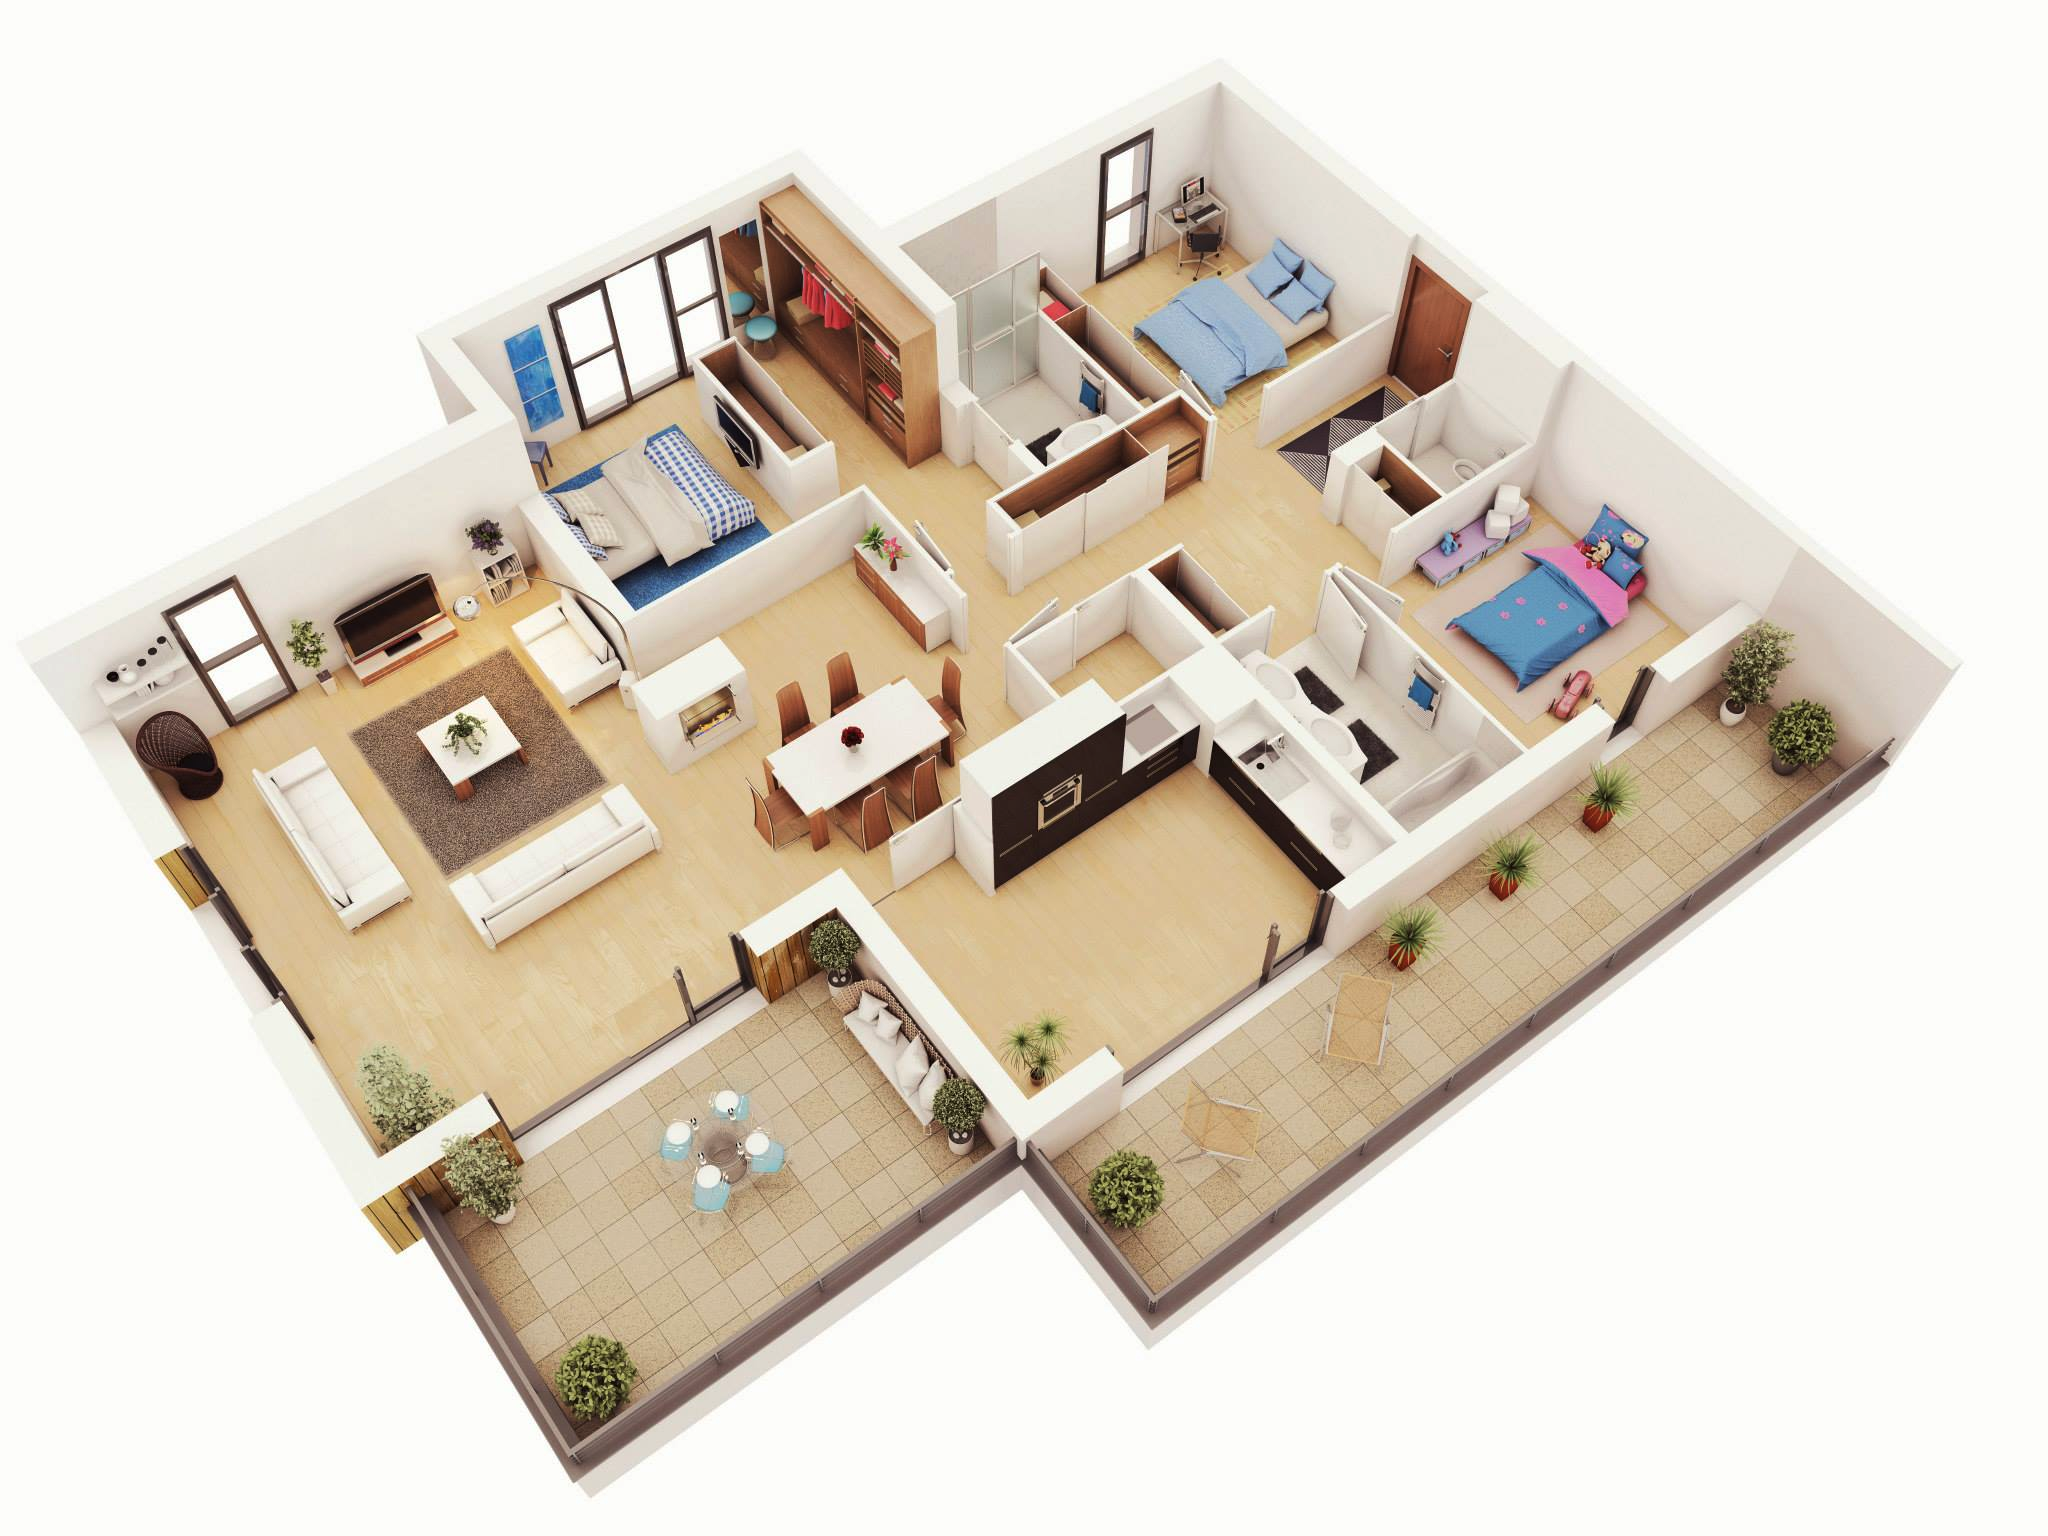 25 more 3 bedroom 3d floor plans for A bedroom has a length of x 3